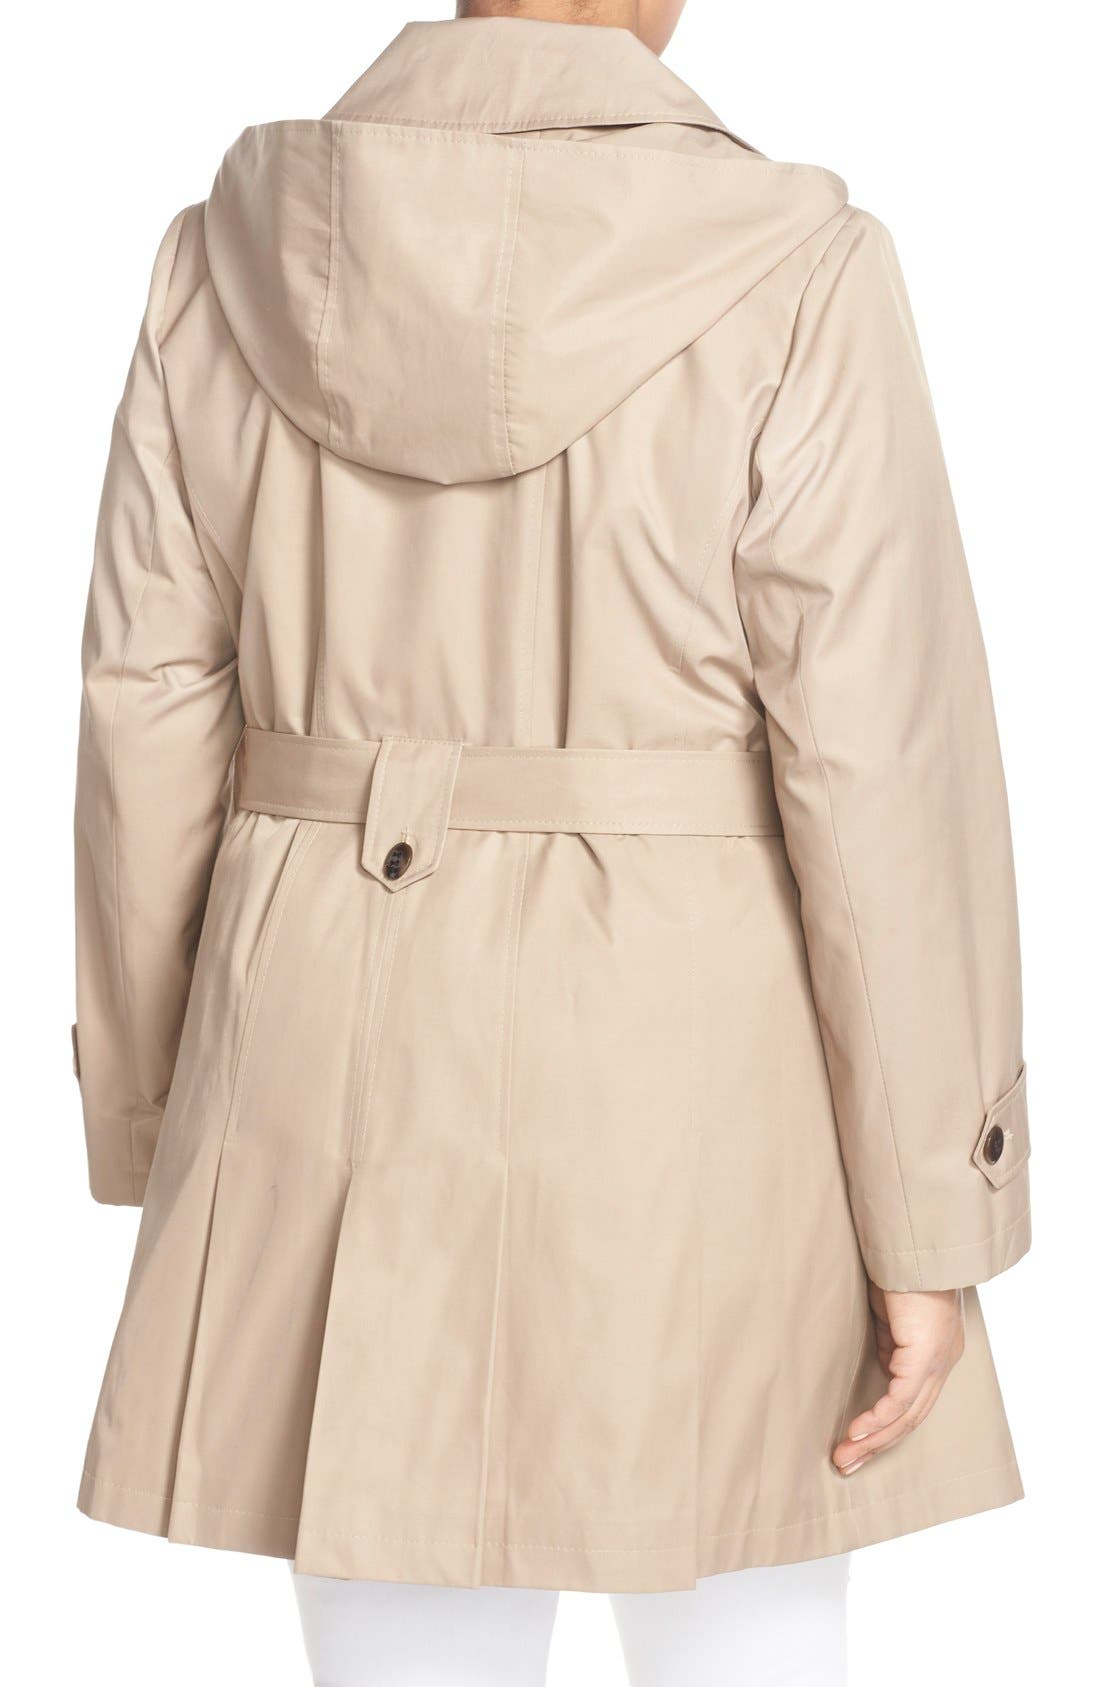 'Scarpa' Single Breasted Trench Coat,                             Alternate thumbnail 8, color,